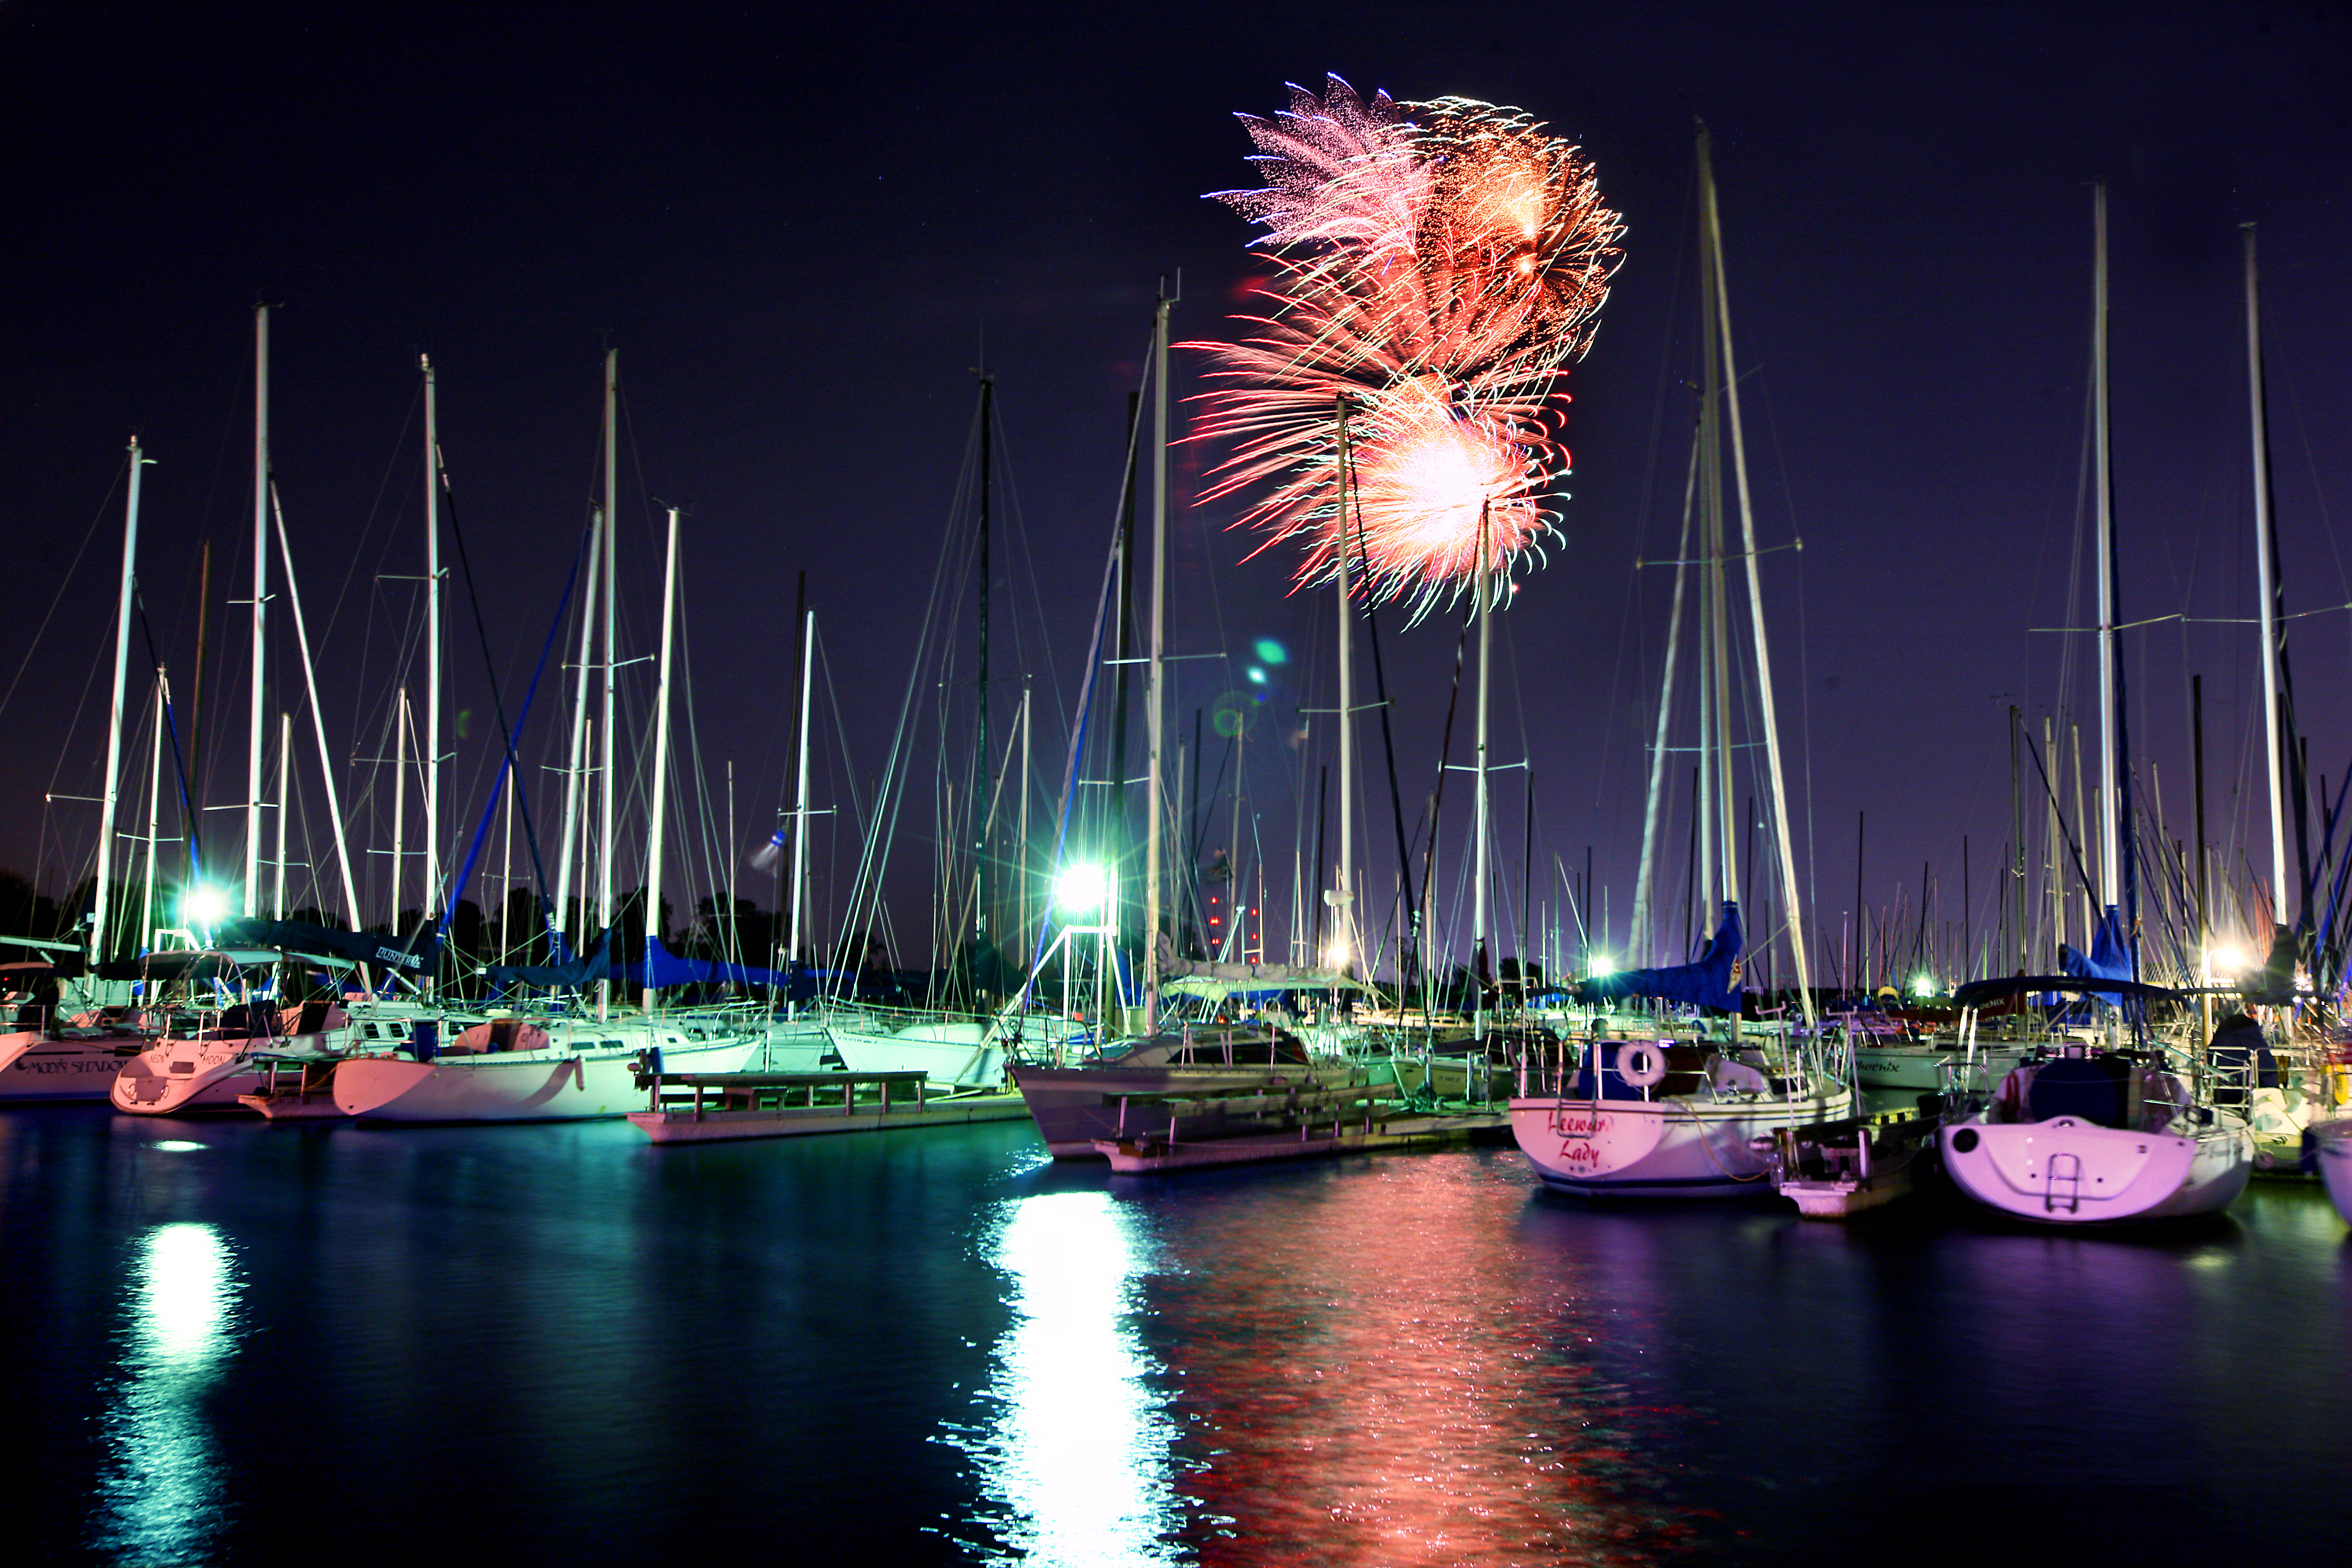 The Biggest July 4th Fireworks Show Ever